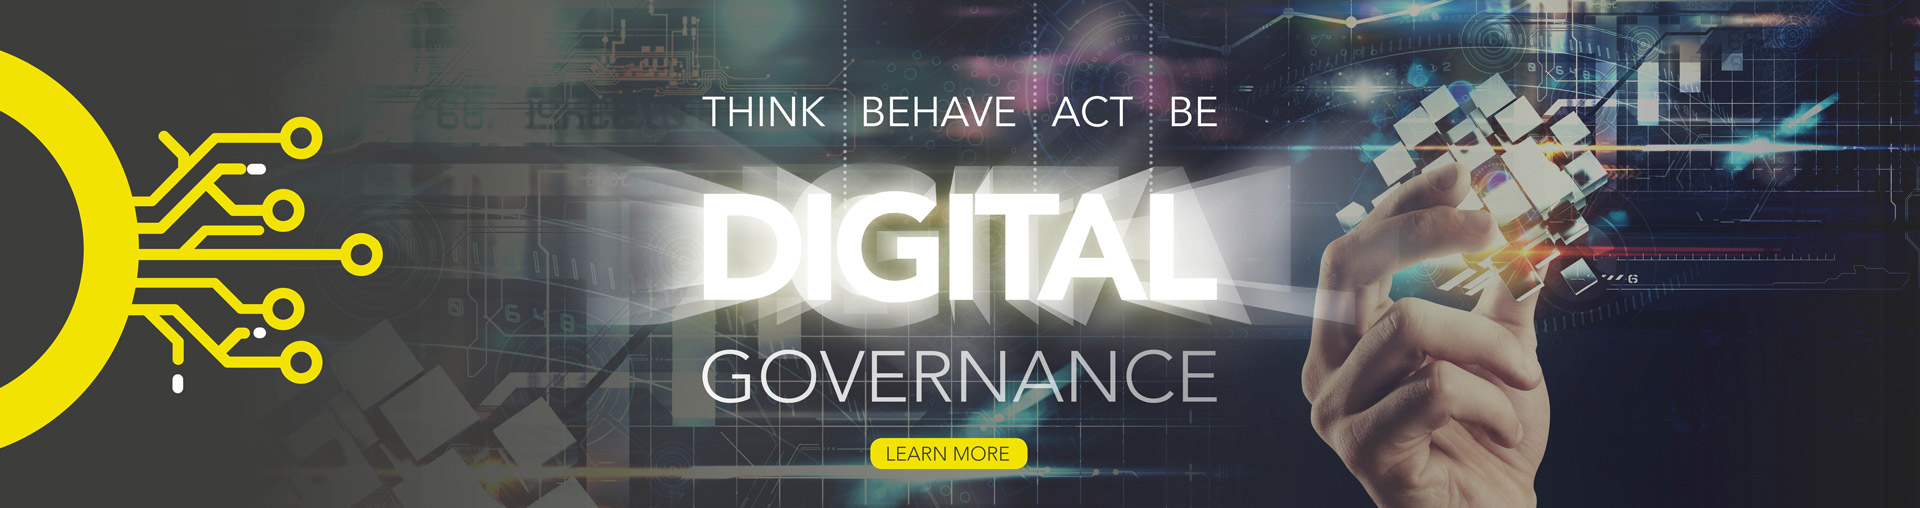 Think Behave Act Be Digital - Digital Governance Services